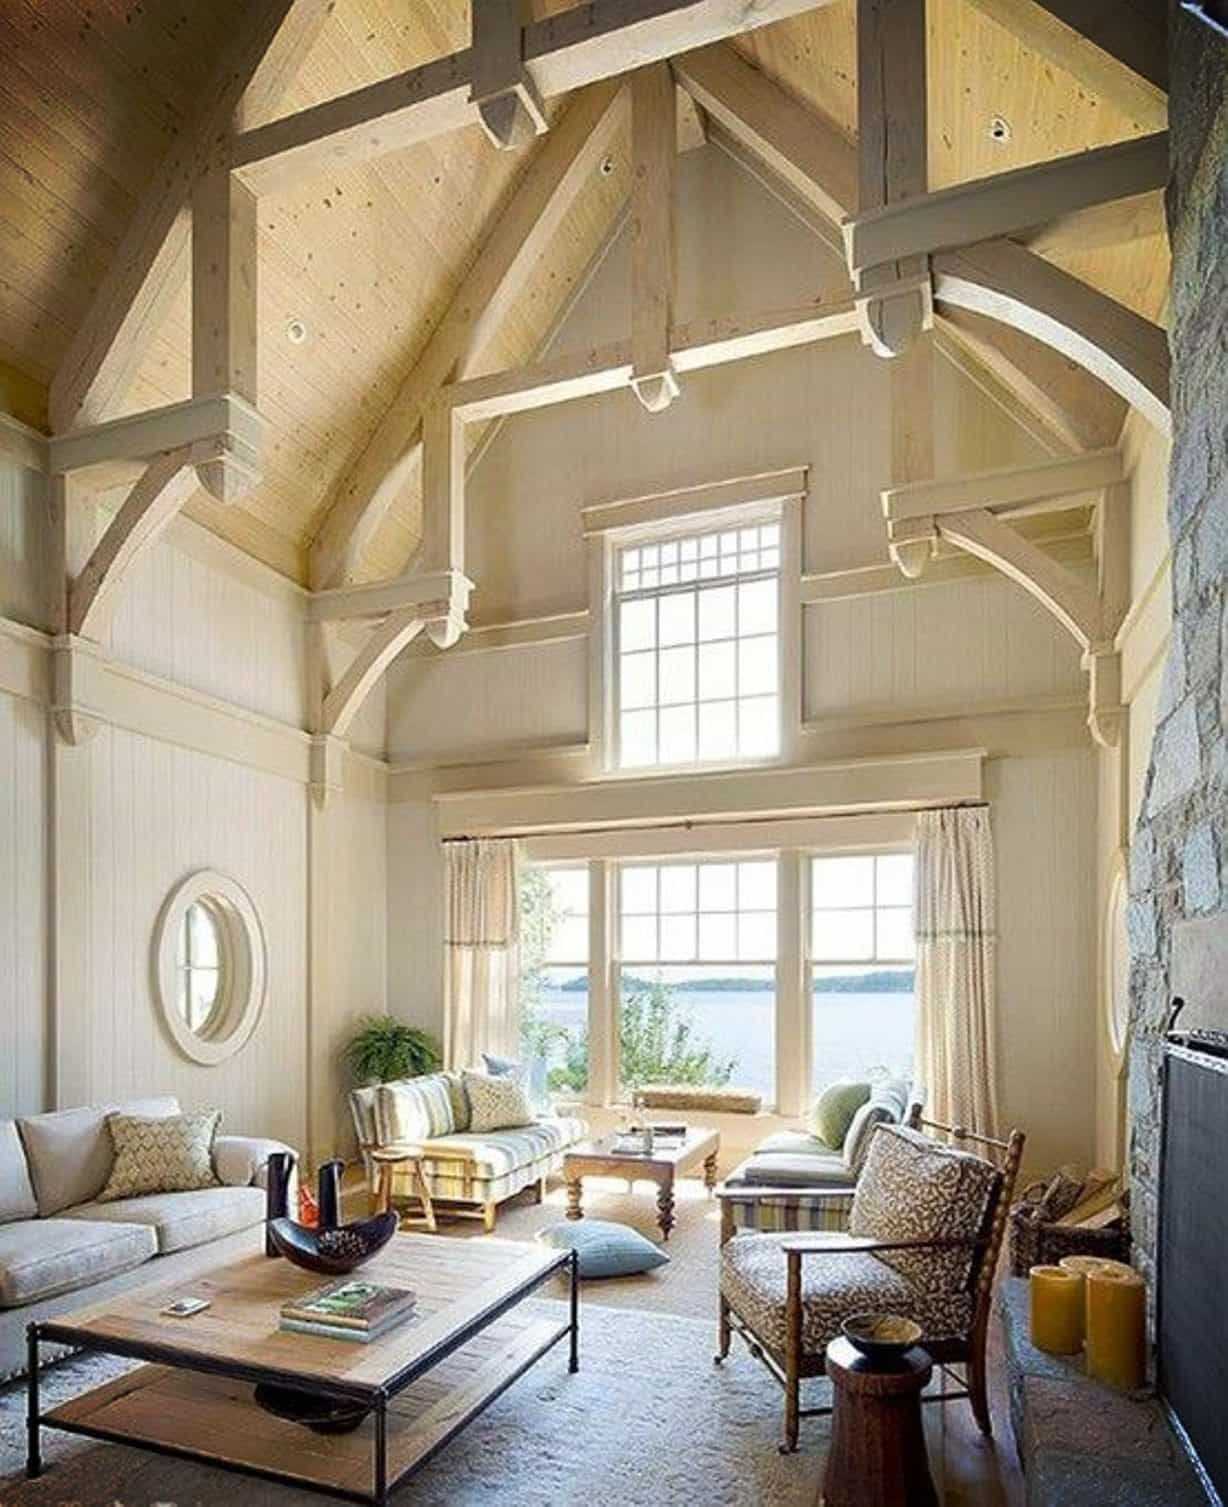 marvelous living room vaulted ceilings | The Benefits Of Vaulted Ceiling in 2019 | Ceiling beams ...